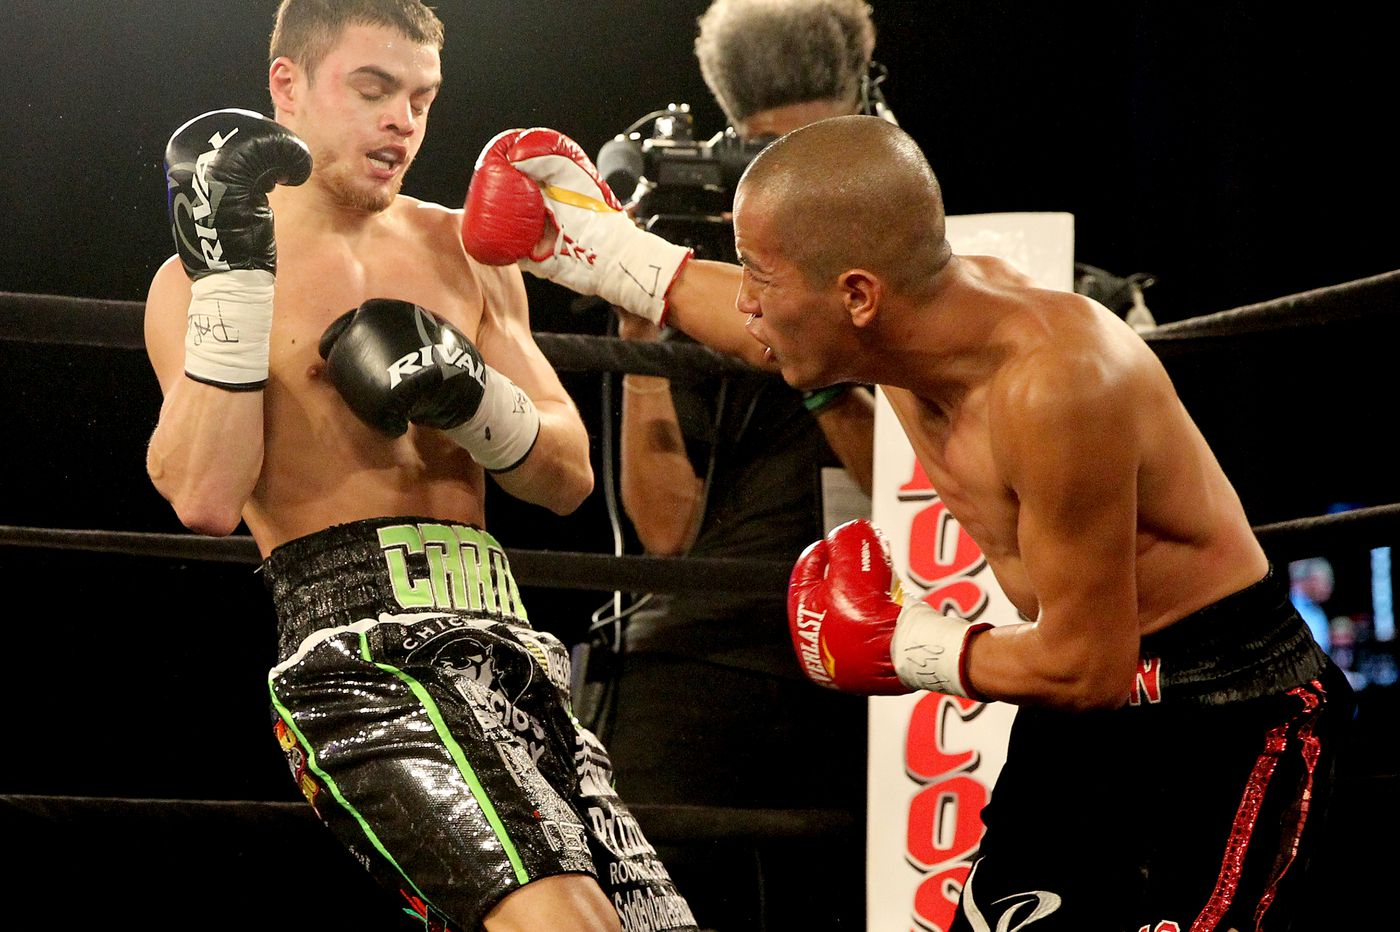 Philly bantamweight Christian Carto KO'd for first loss